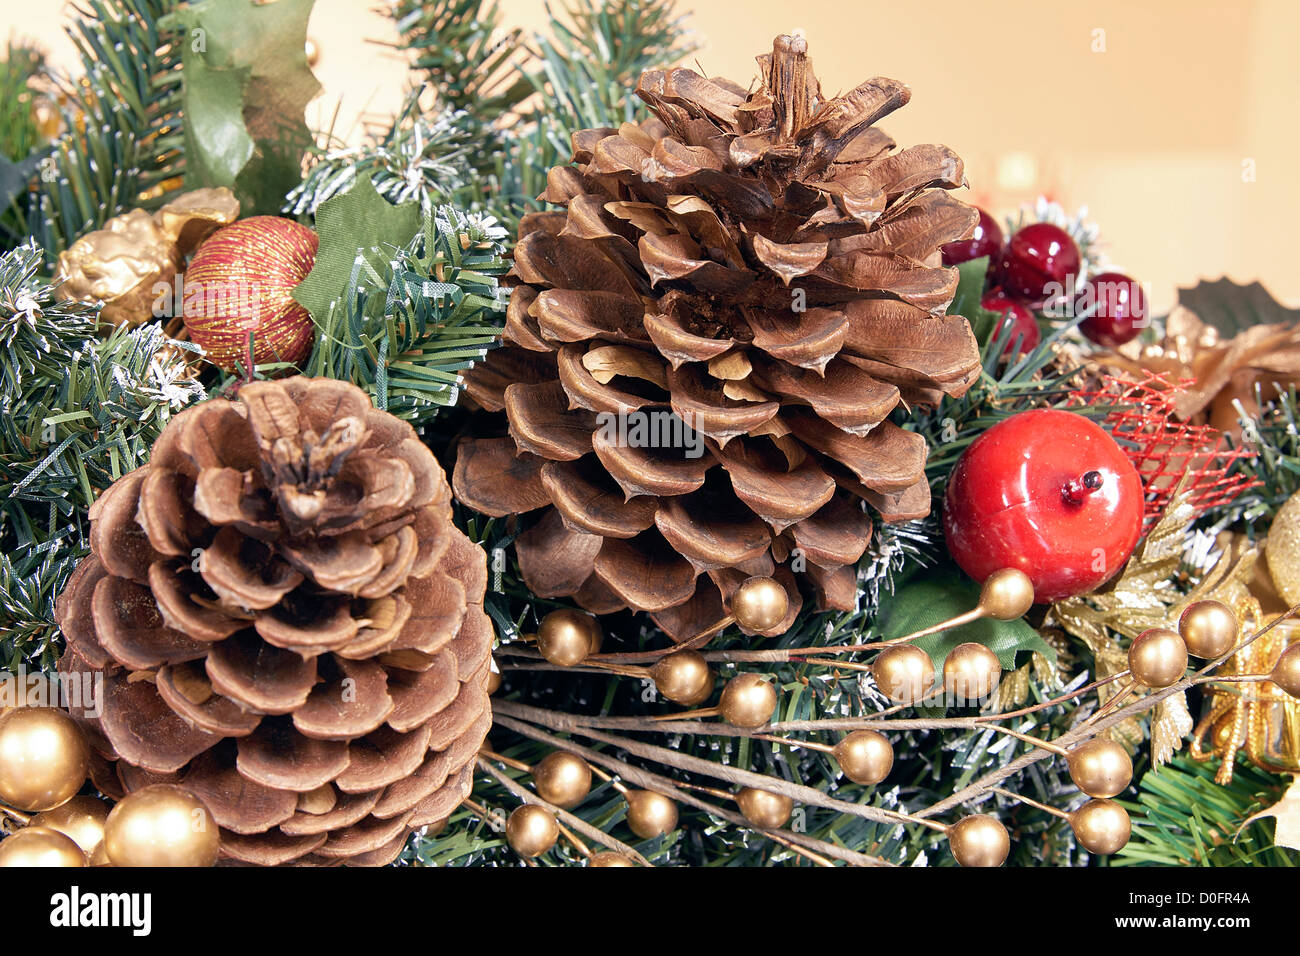 Christmas Tree Garland Decoration With Pine Cones And Artificial Stock Photo Alamy